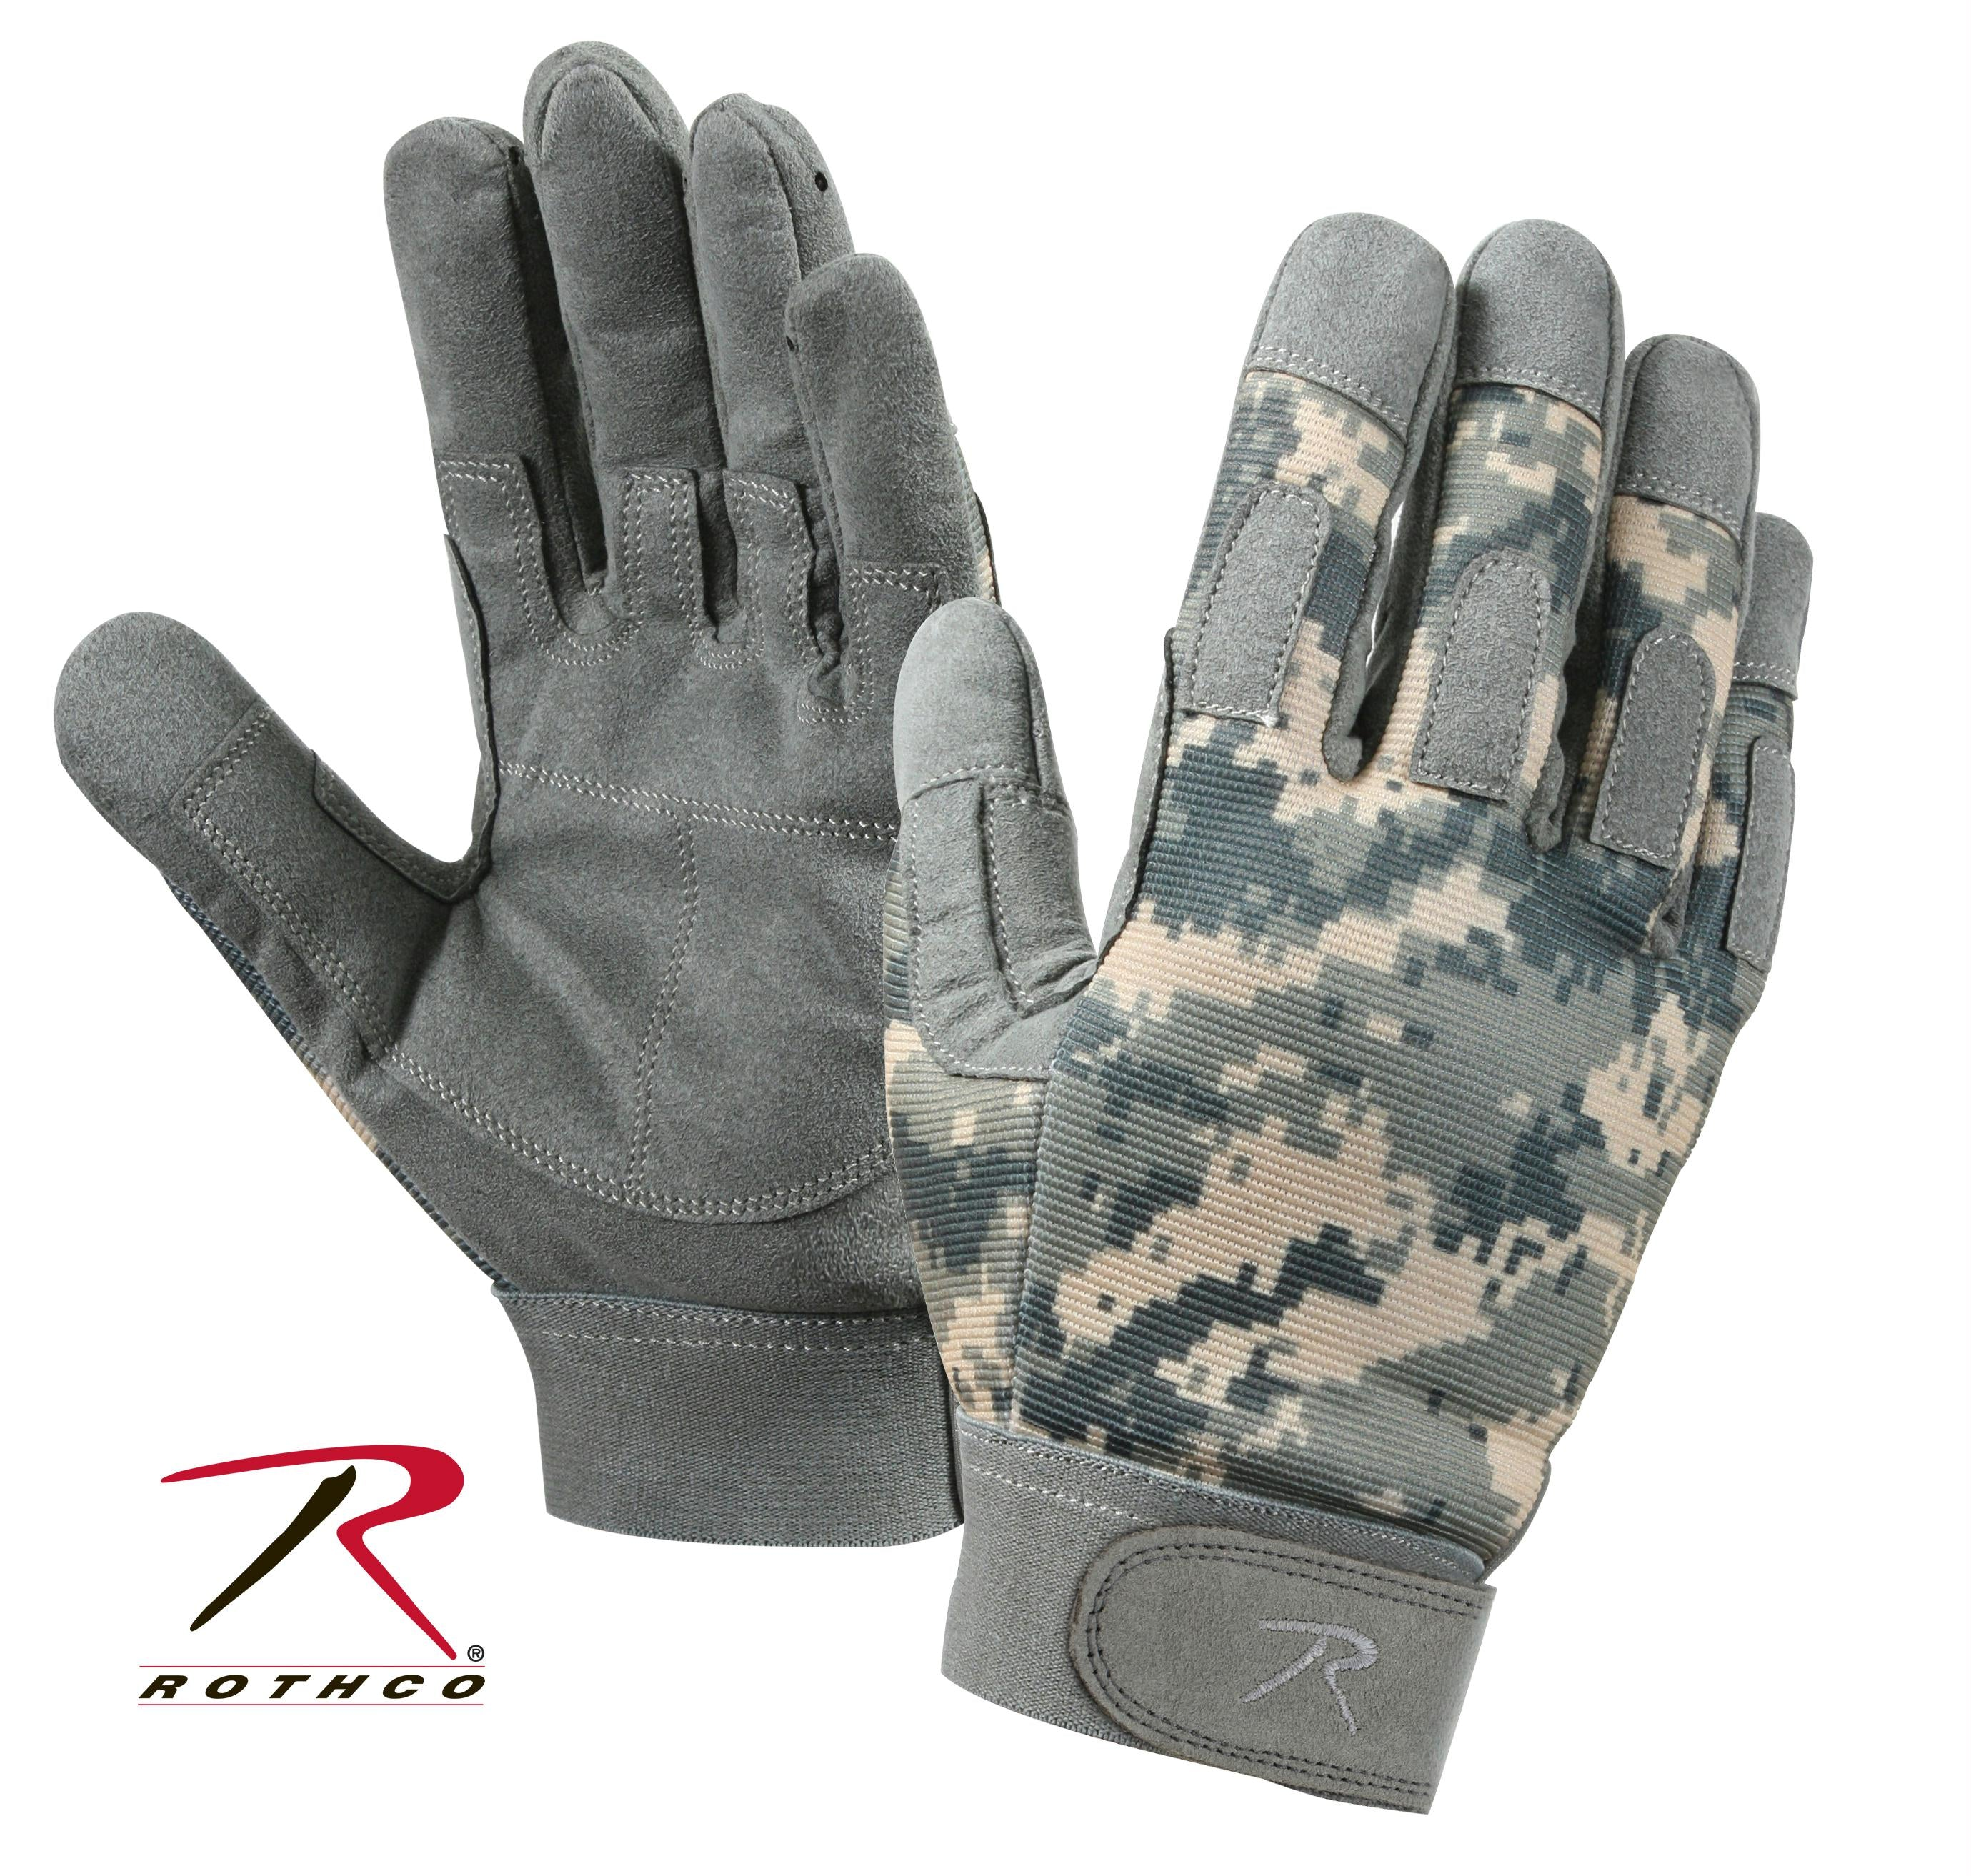 Rothco Lightweight All Purpose Duty Gloves - ACU Digital Camo / L